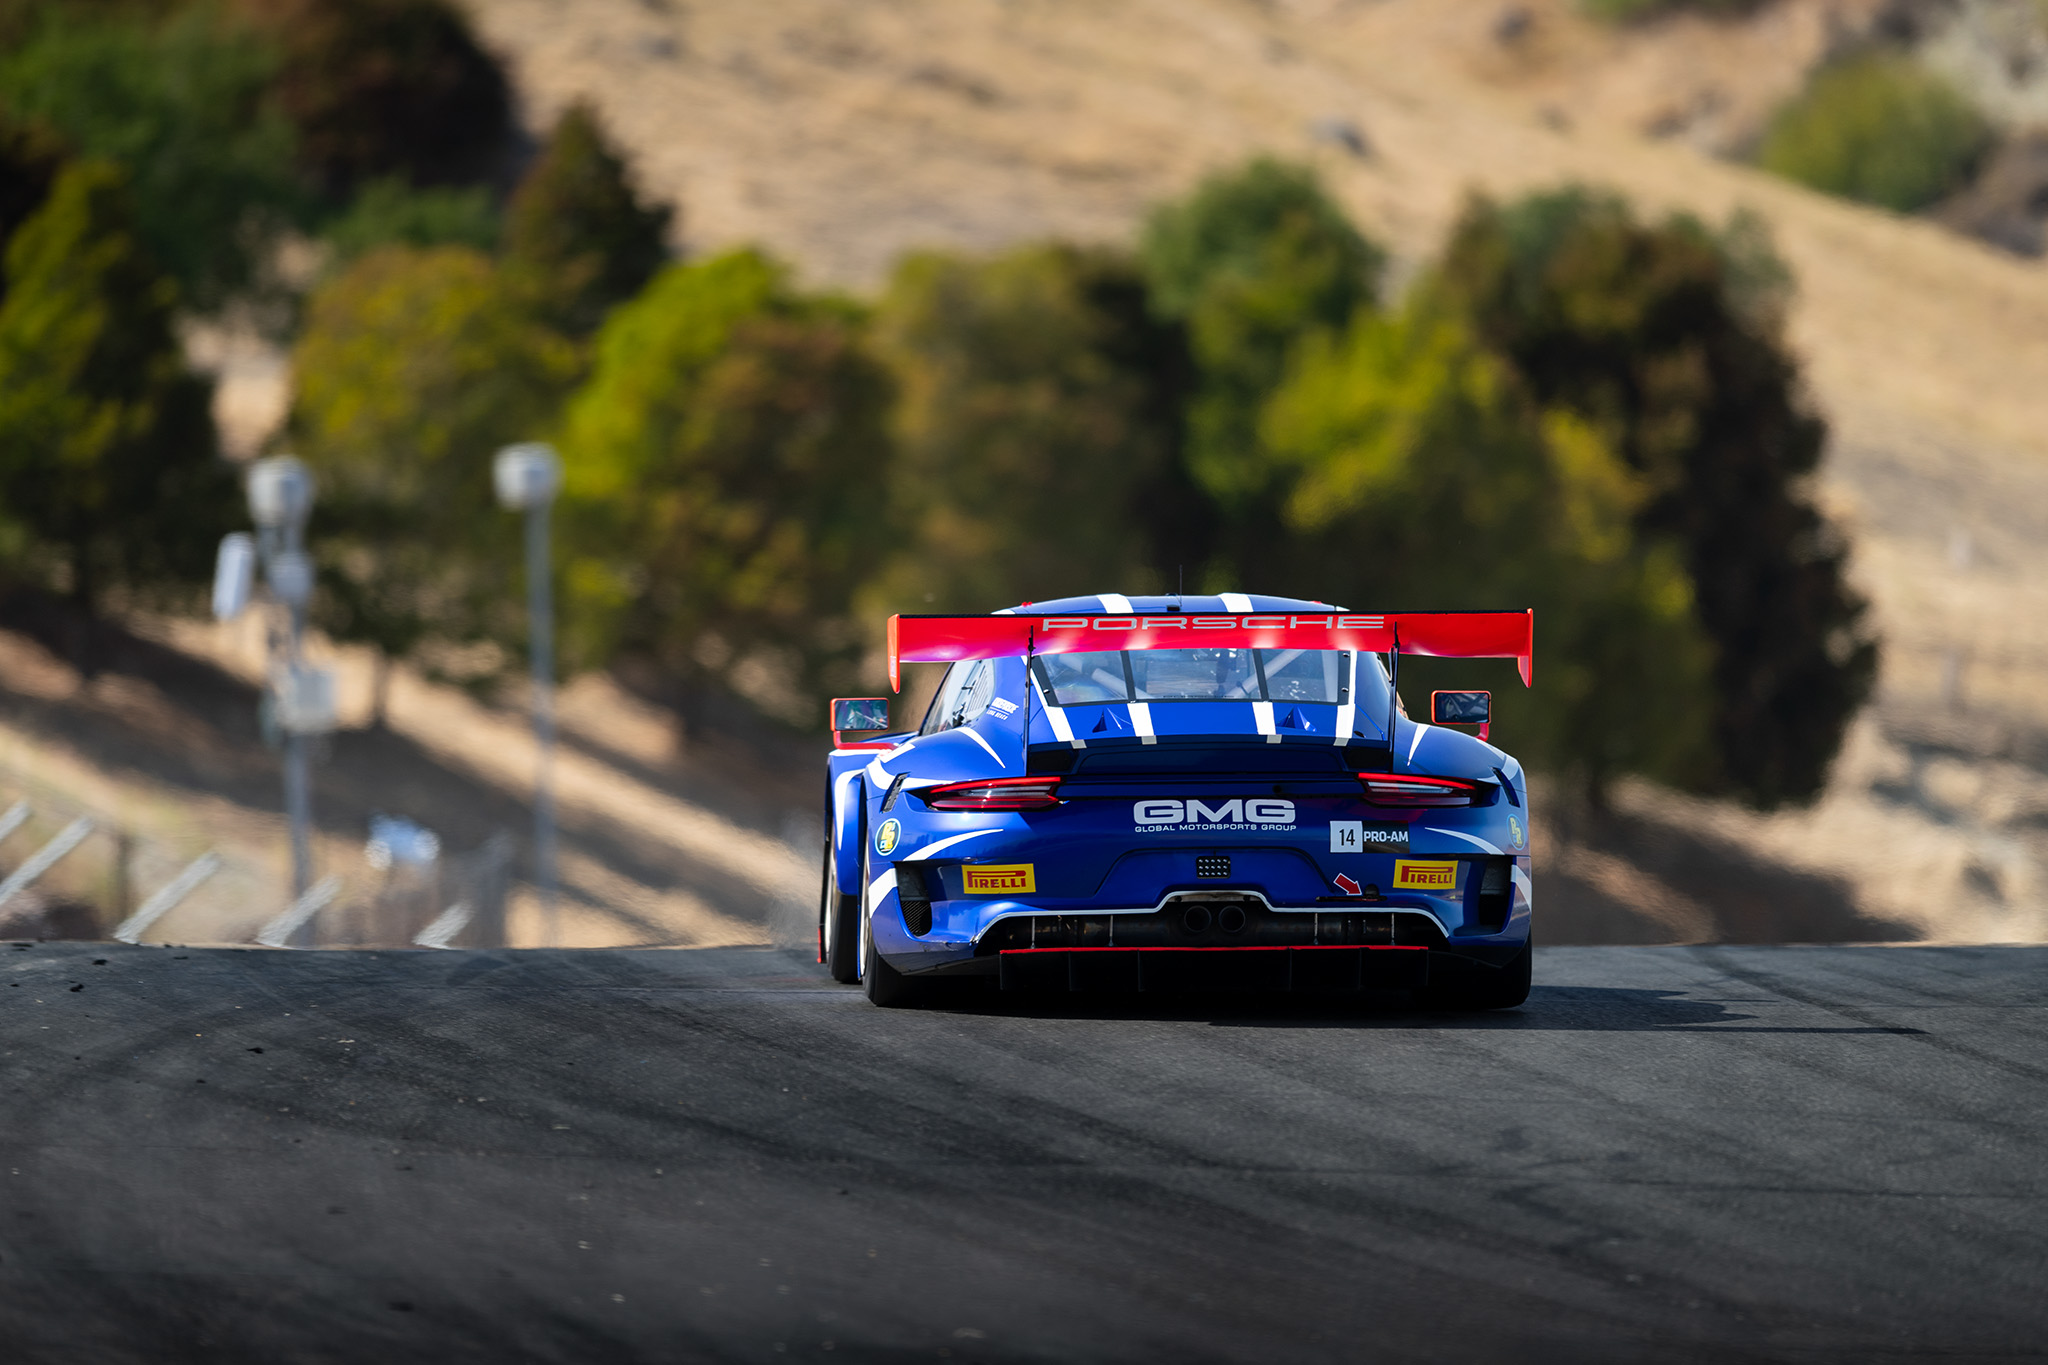 SRO World Challenge GMG Racing Porsche 911 GT3 R with driver James Sofranas, motorsports photography by Luke Munnell